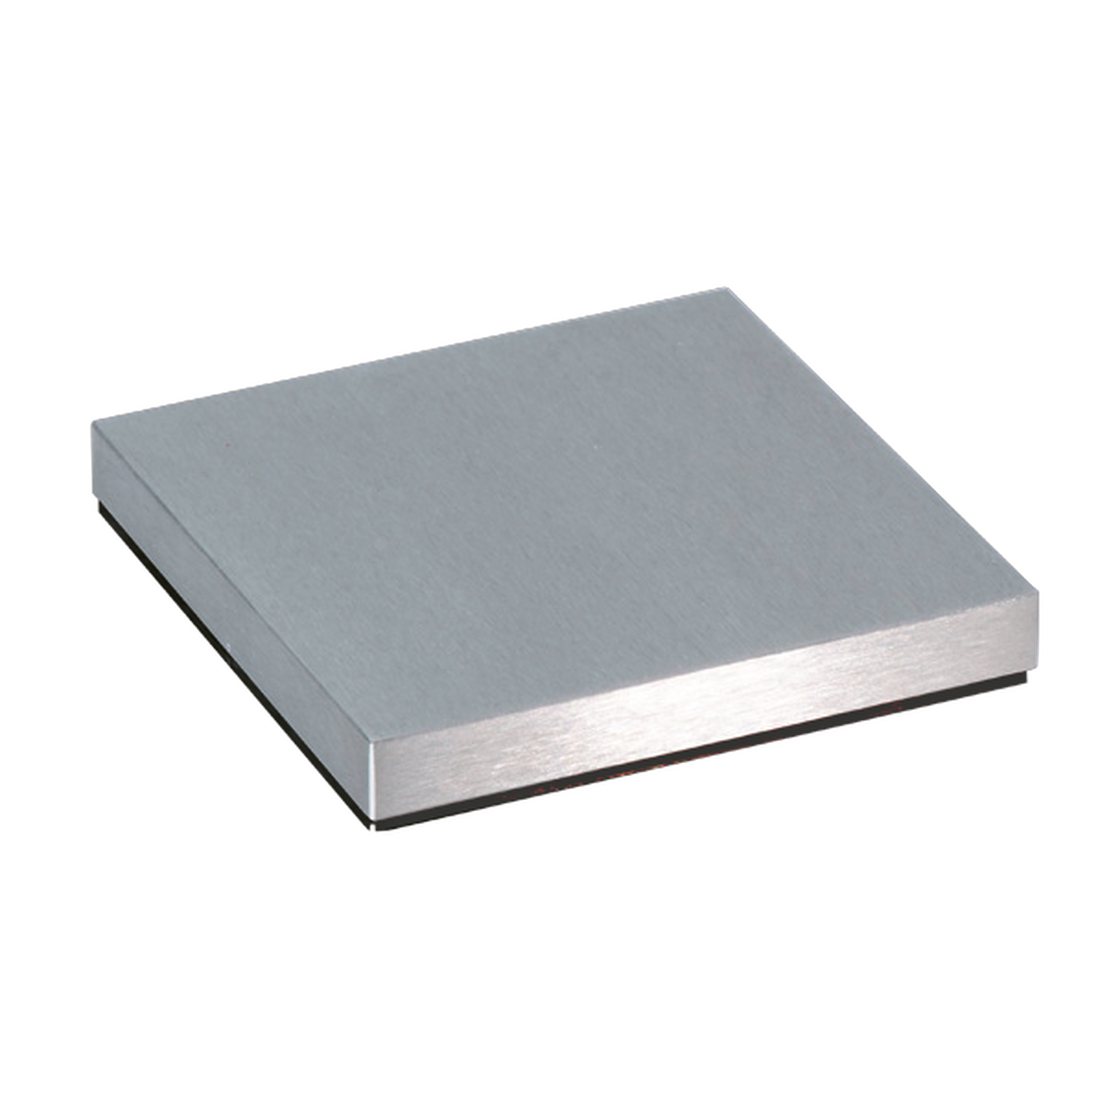 SQUARED GLASS GLUING PLATES, WITH UNCONTINUOUS EDGE, [/] 101X101MM